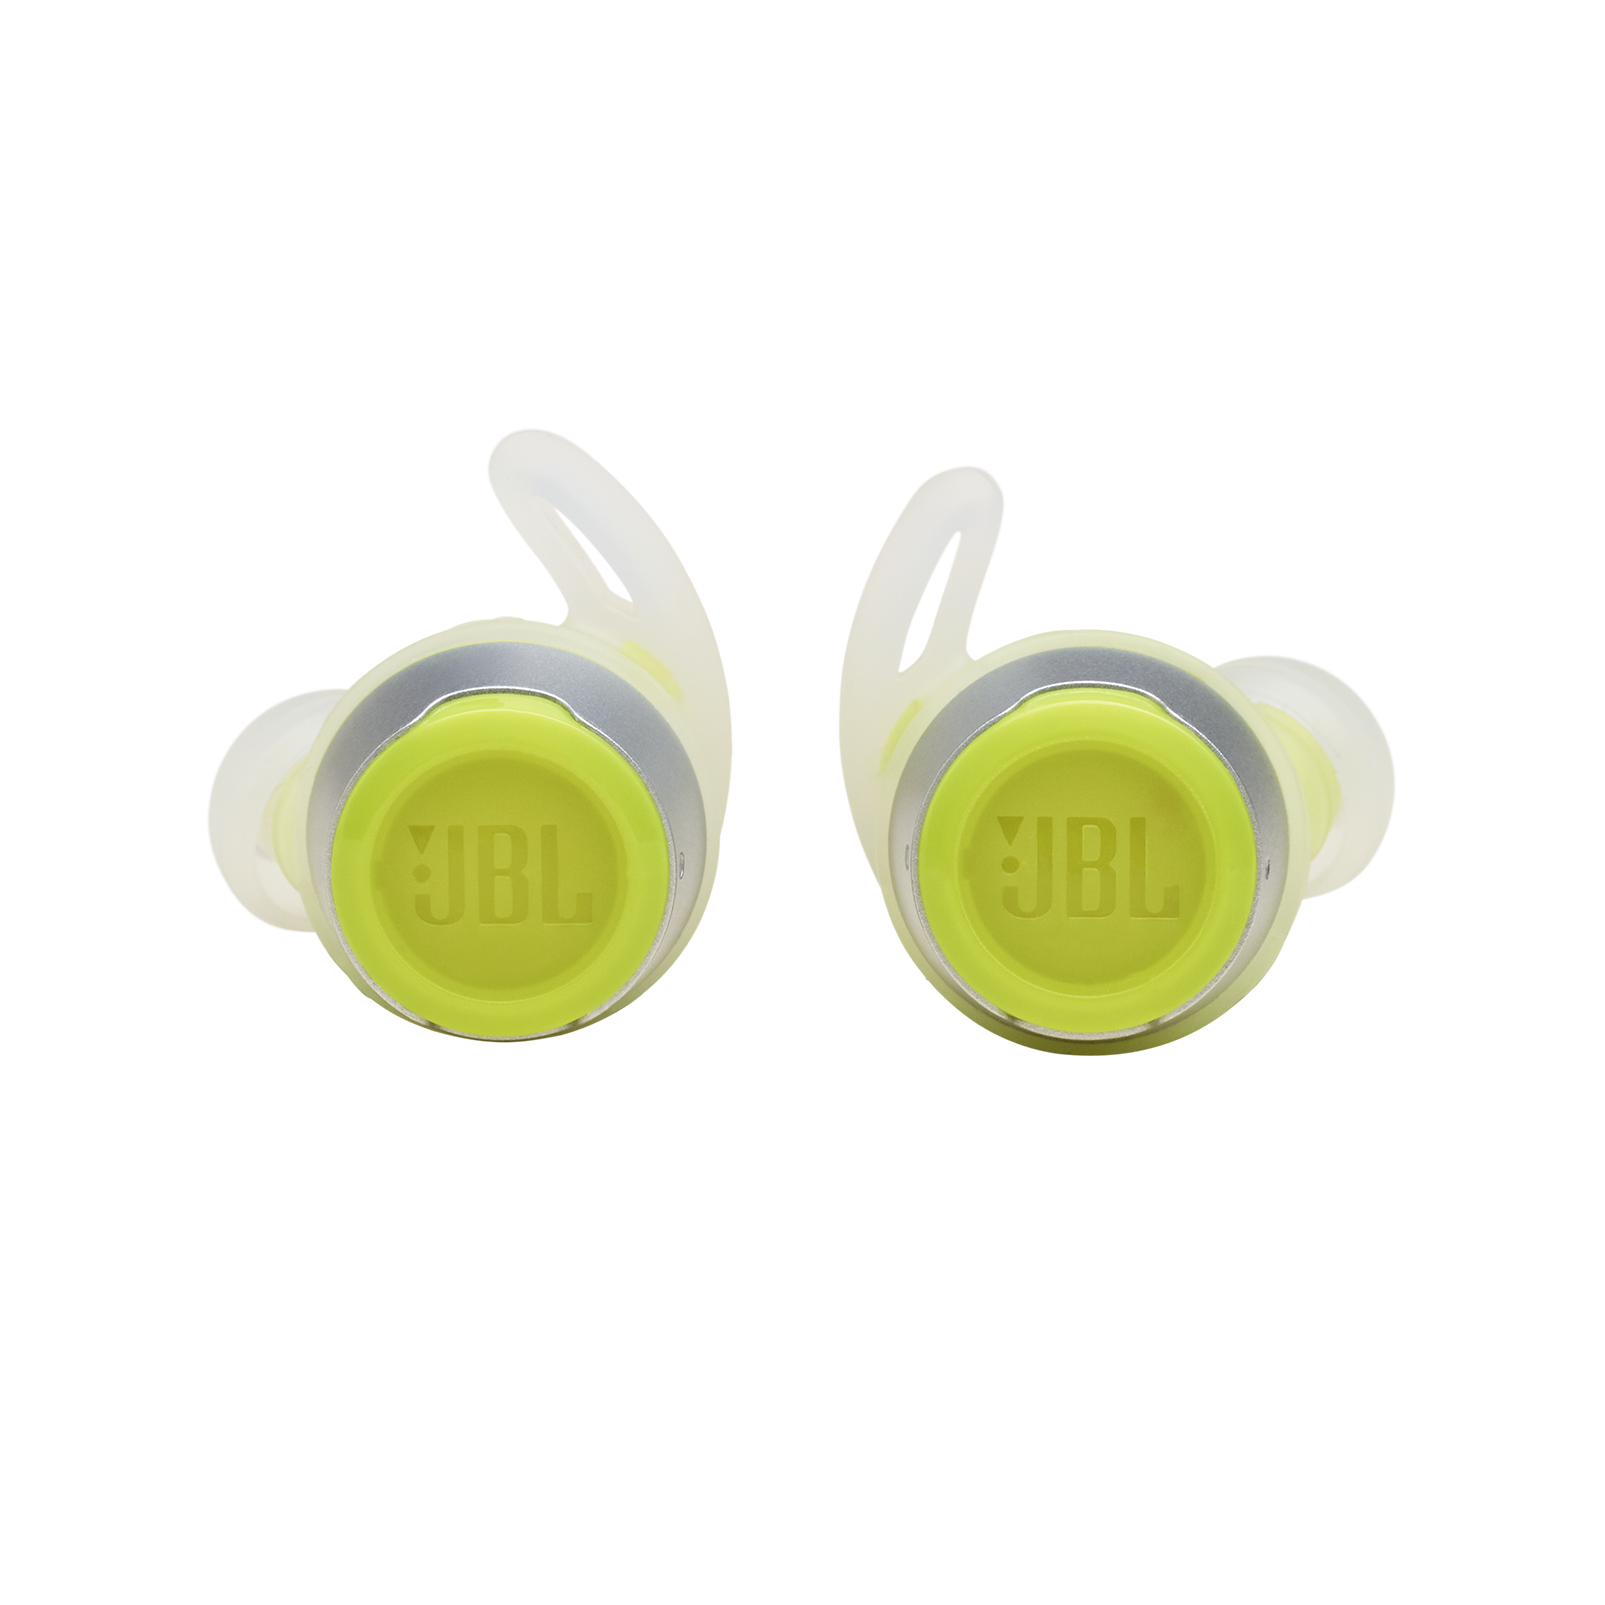 JBL REFLECT FLOW - Green - True wireless sport headphones. - Front